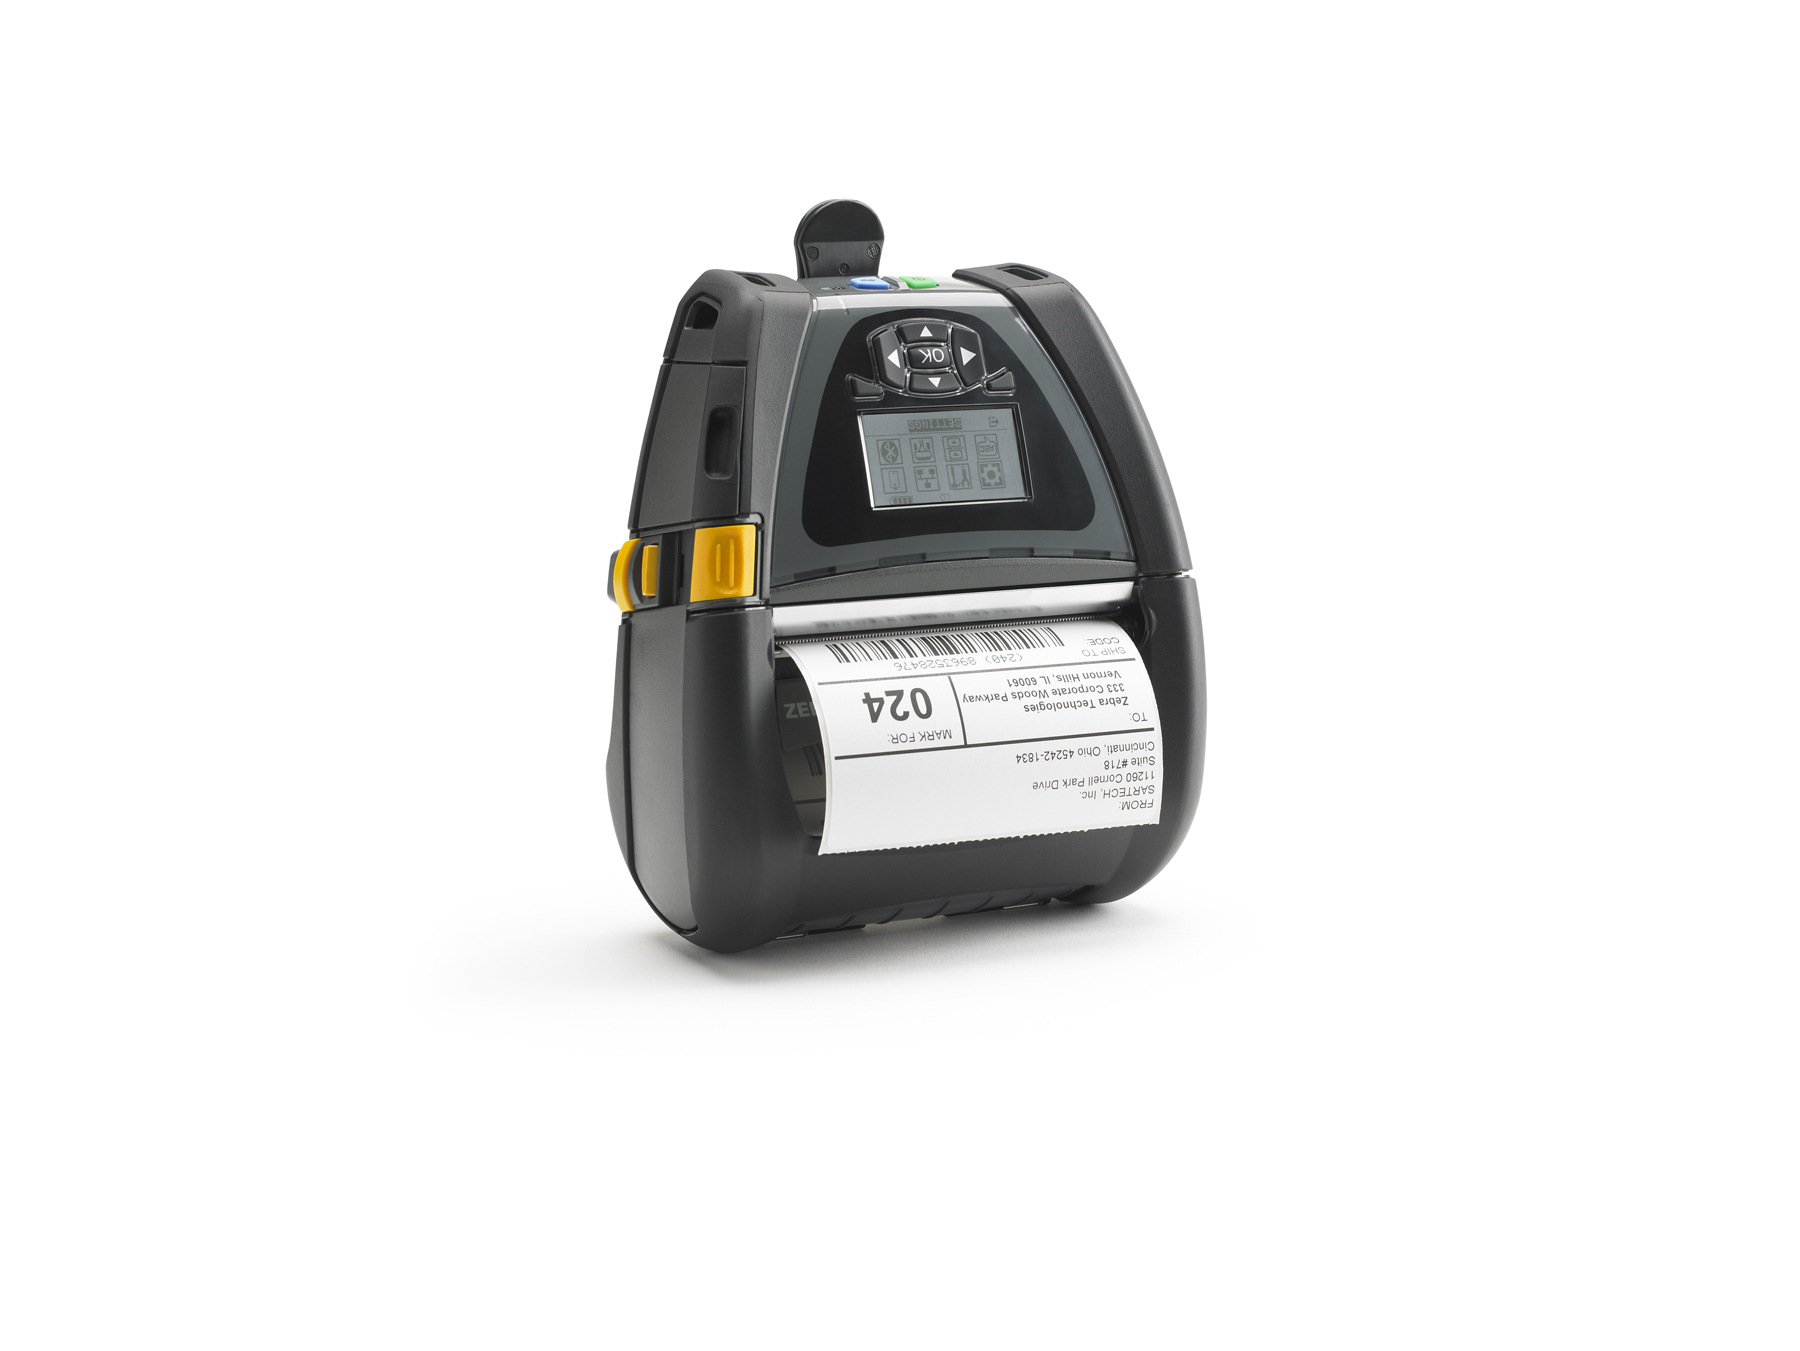 ZEBRA QLN420 DIRECT THERMAL MOBILE PRINTER 203 X 203DPI